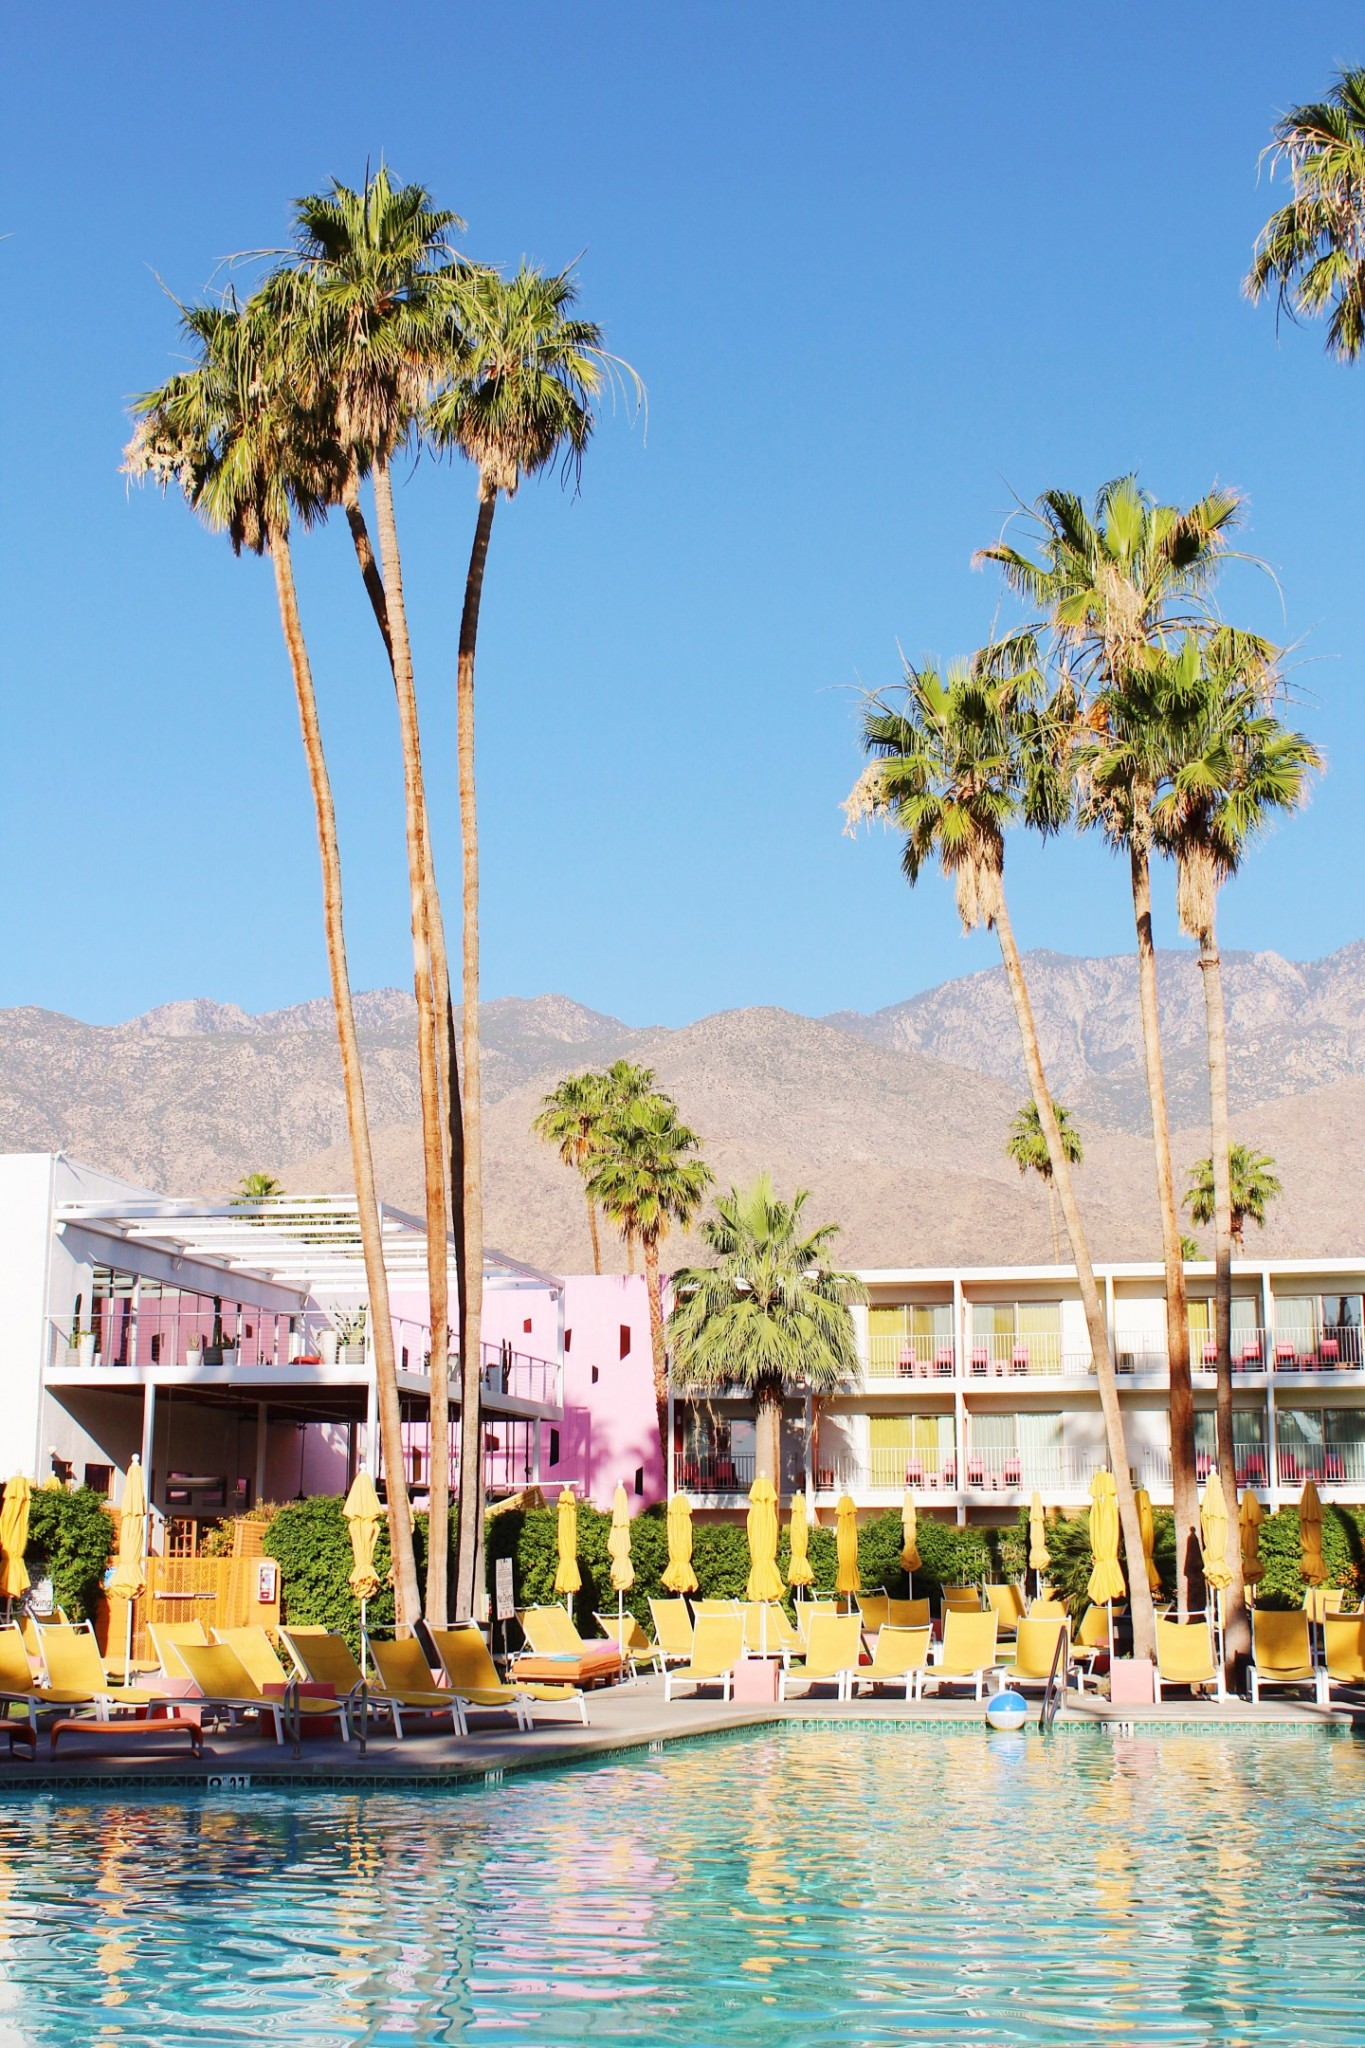 Lifestyle blogger Mollie Moore shares a hotel review of The Saguaro Palm Springs